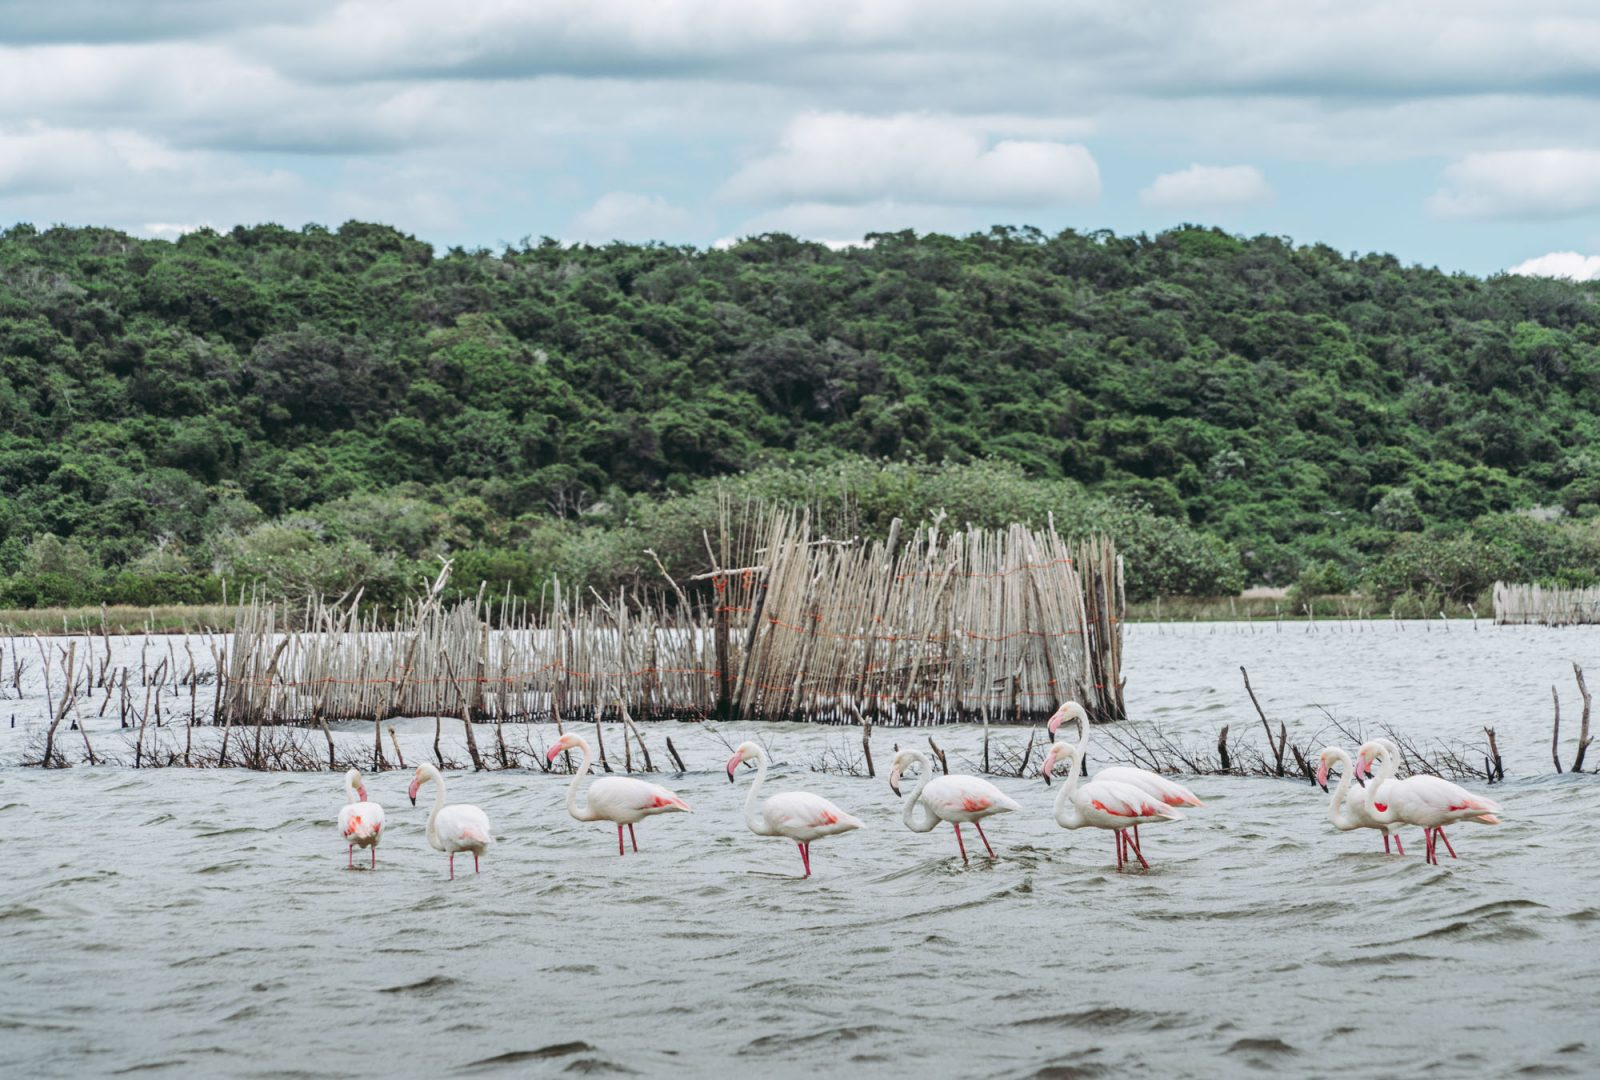 Kosi Bay, iSimangaliso Wetland Park, South Africa